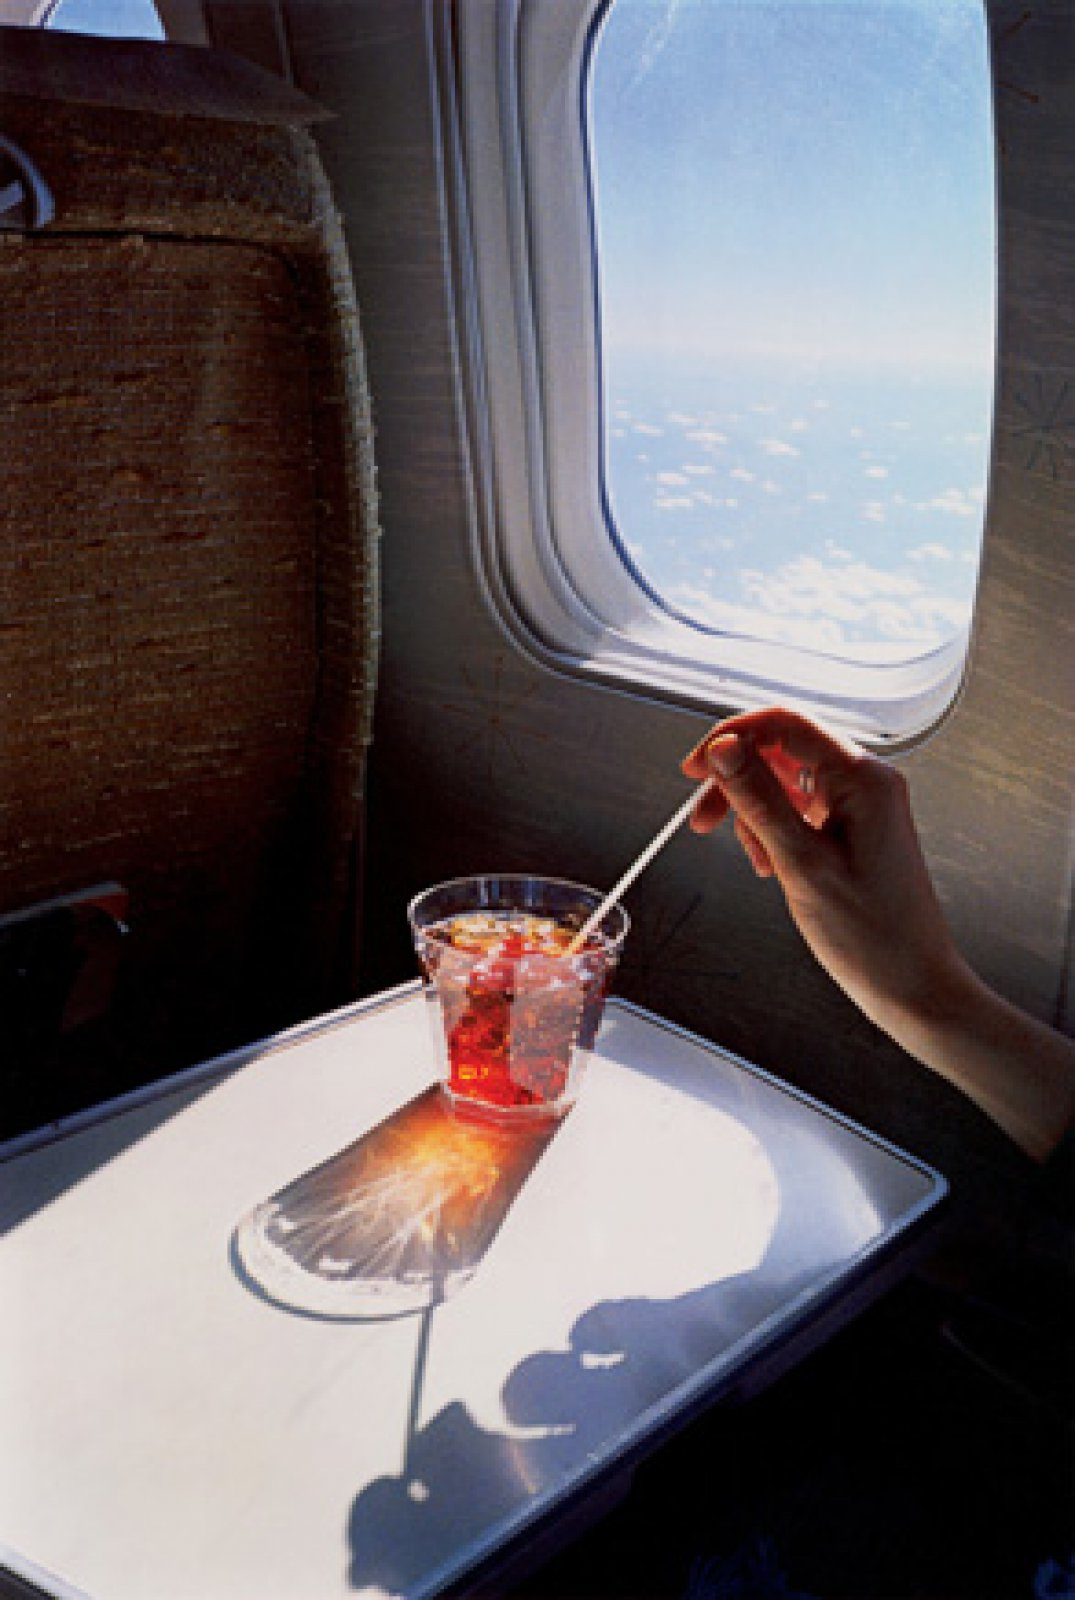 William Eggleston - Not Copper Armour - The Photography Tag - Photography - Blogging - Lifestyle - Creativity